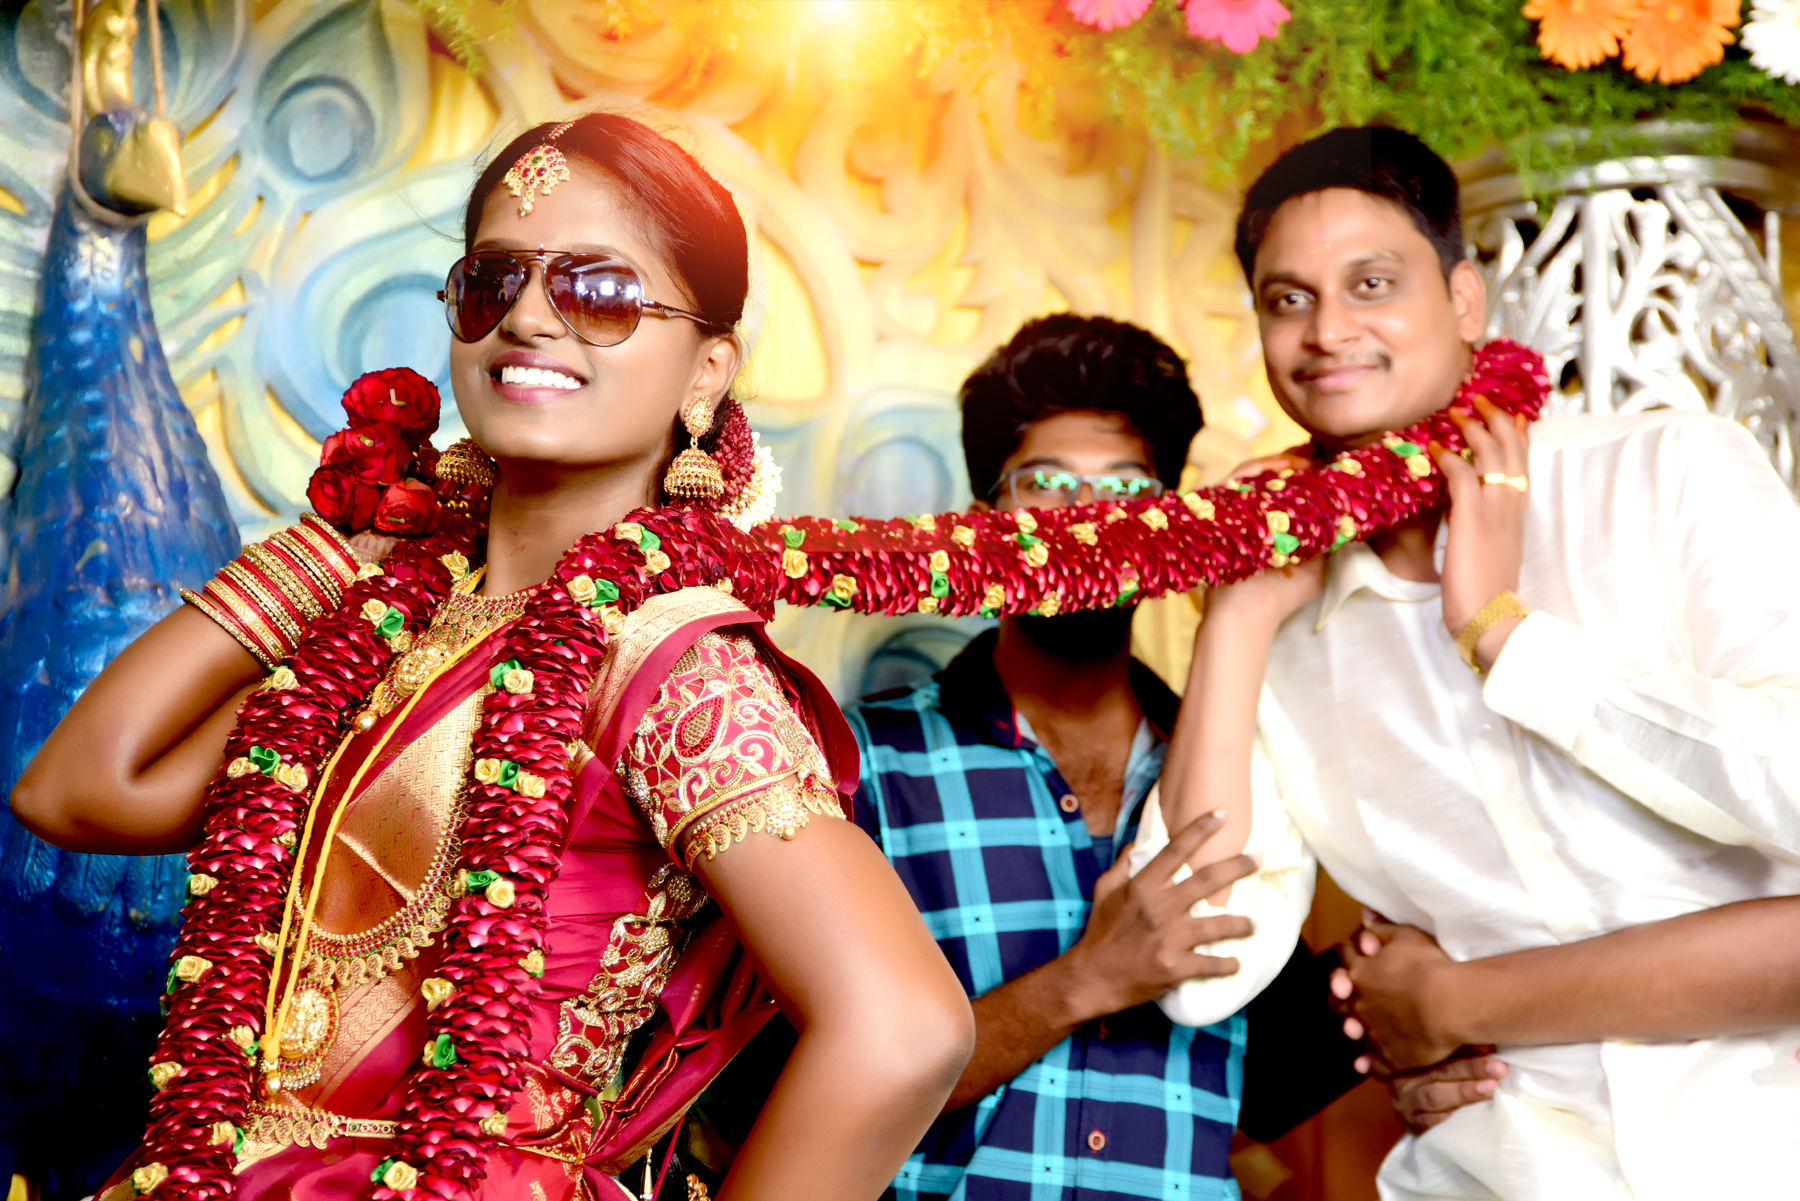 File:Candid-Wedding-Photographers-Trichy (2) jpg - Wikimedia Commons